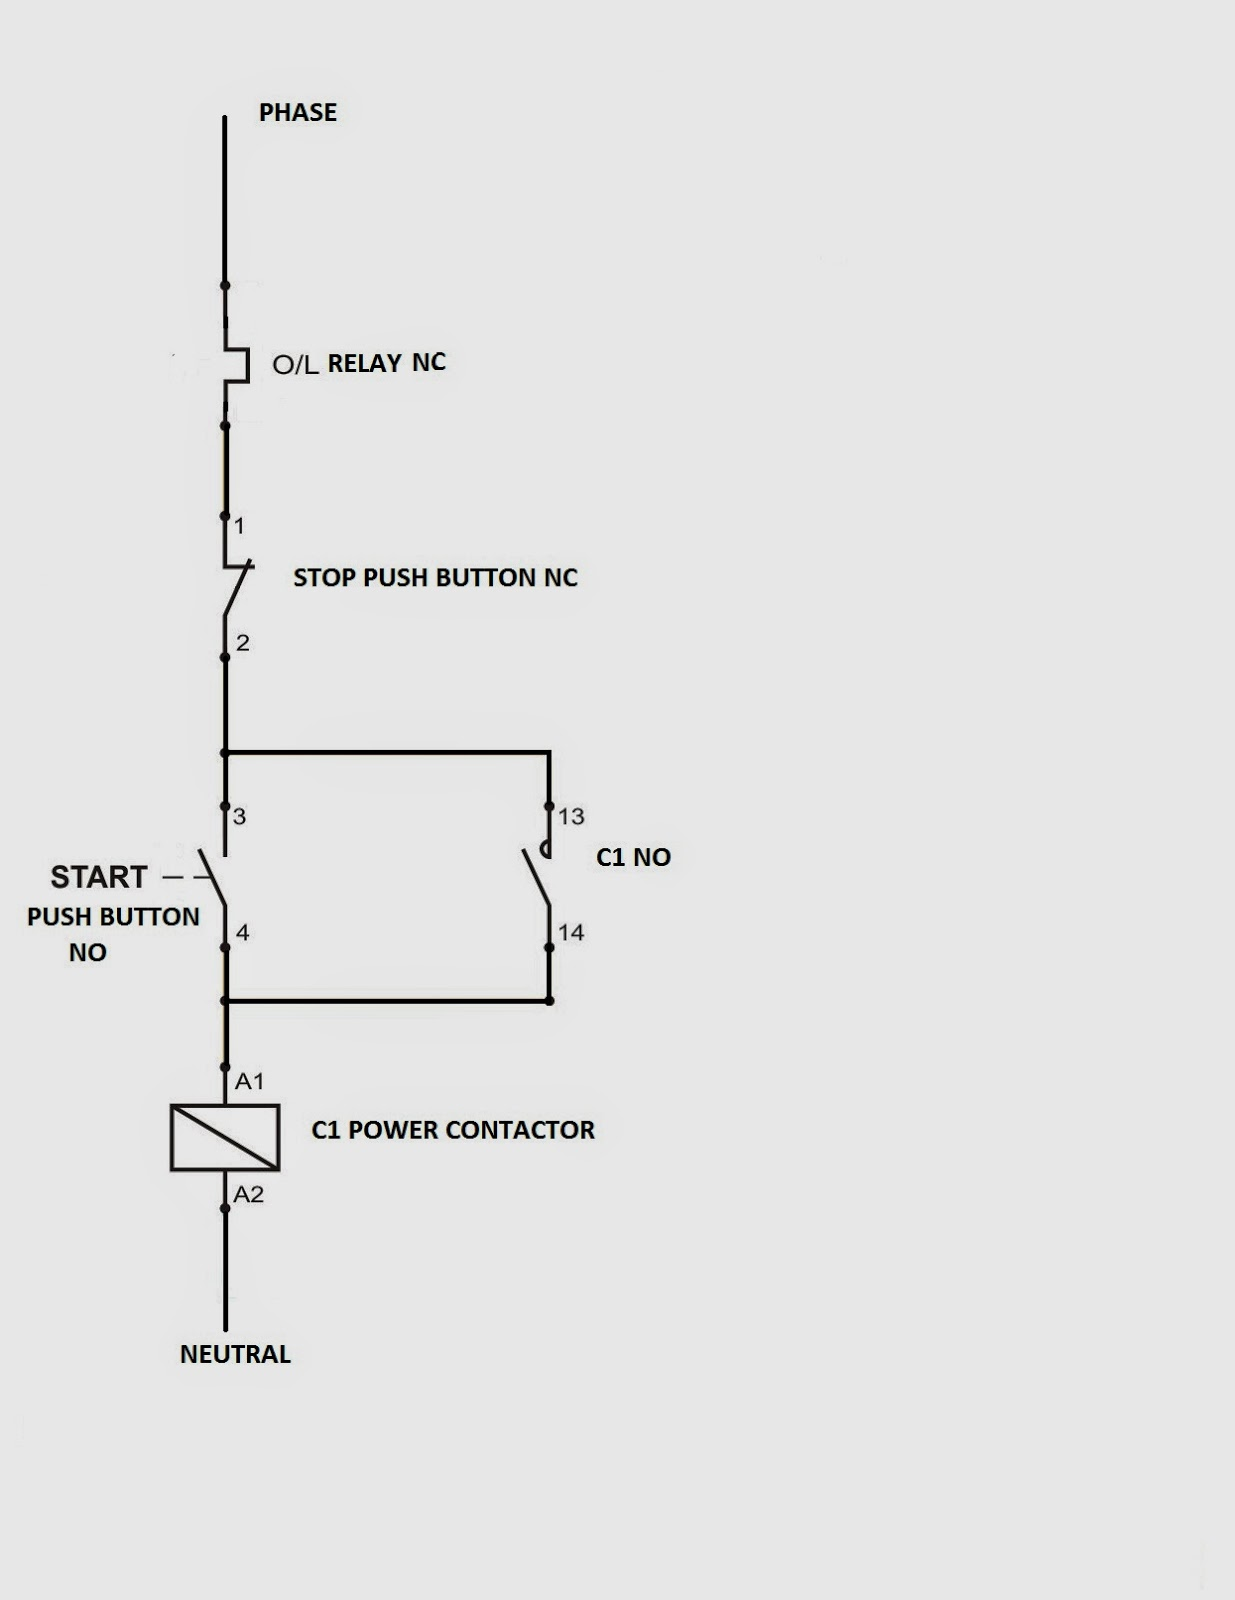 medium resolution of 1 when start button normally open no is pressed supply is connected to the motor through power contactor c1